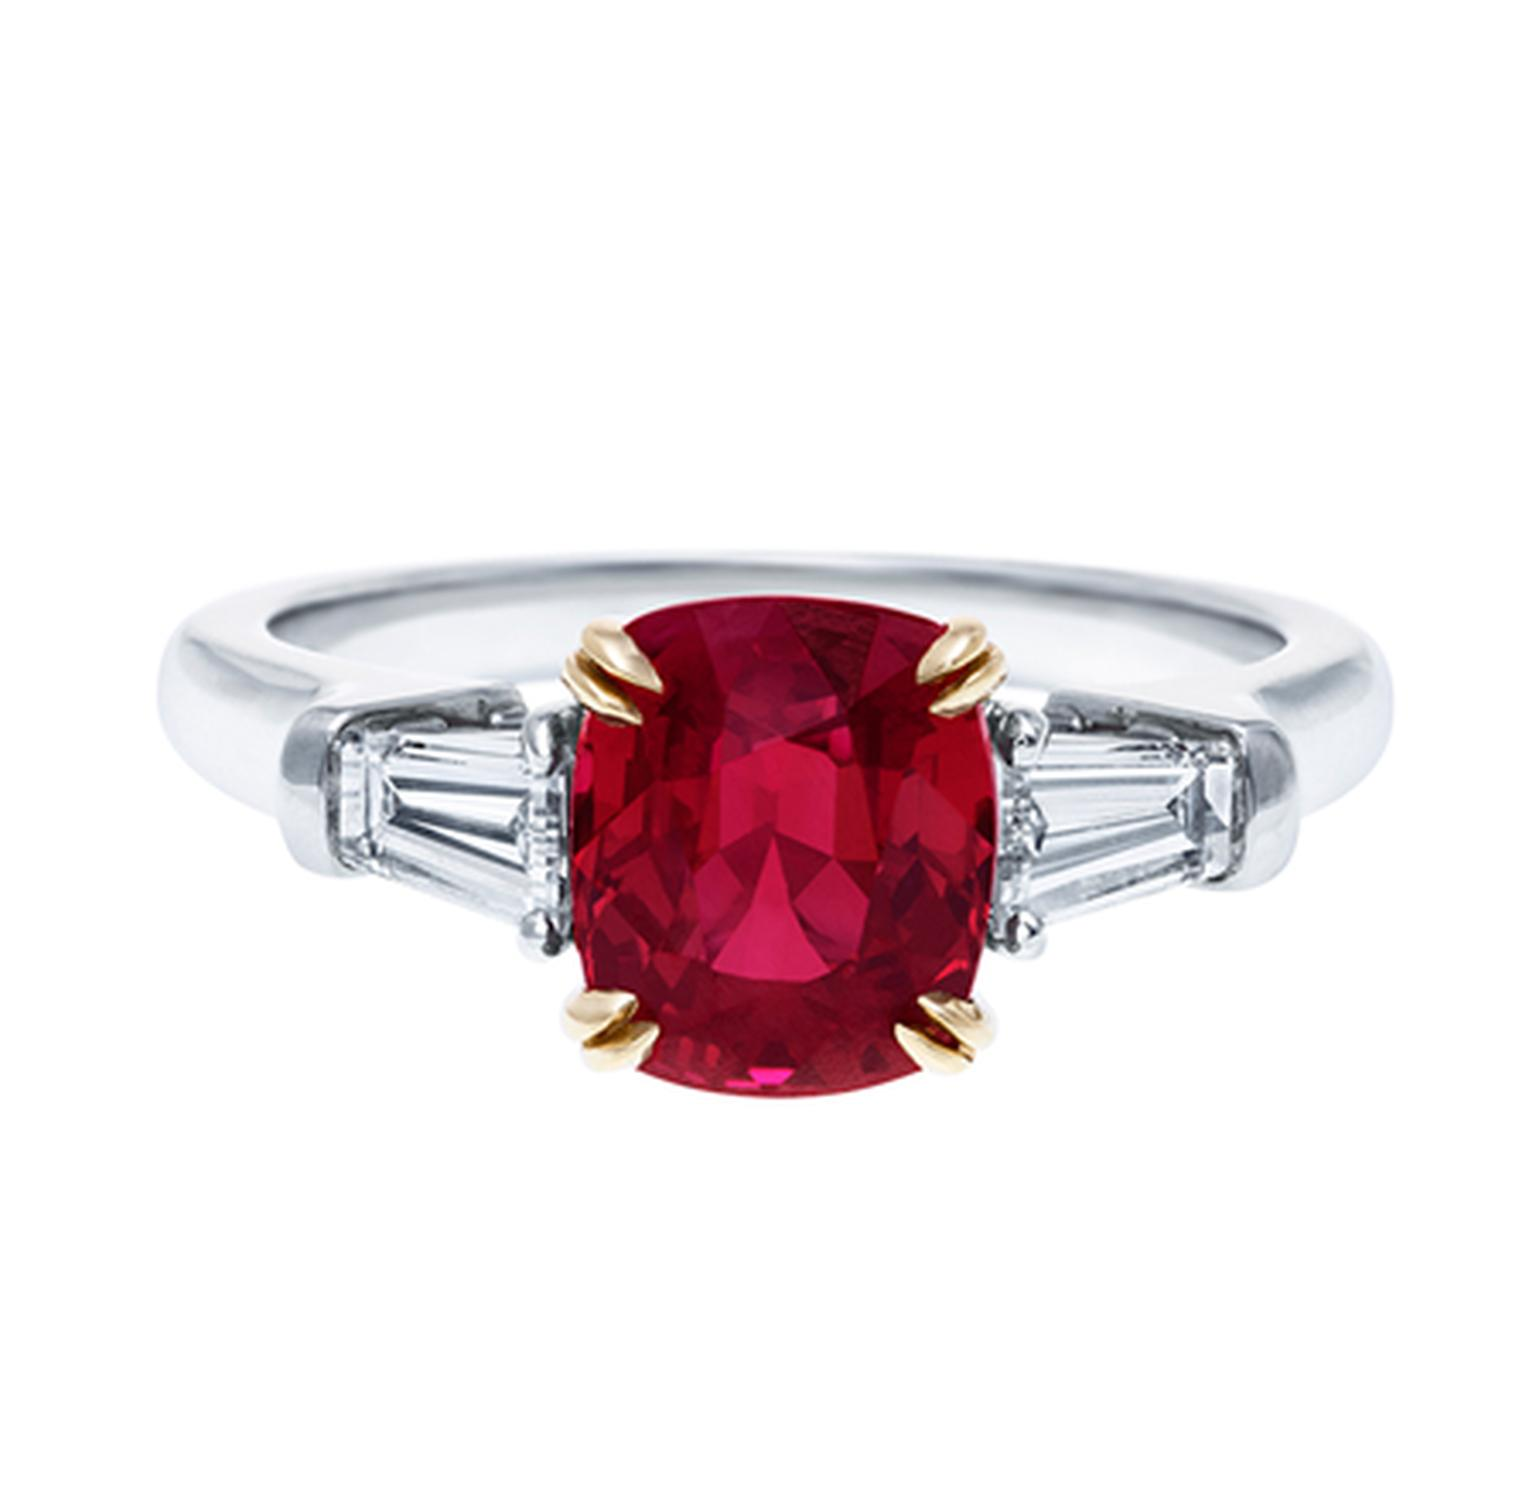 Harry Winston Classic Winston cushion-cut ruby engagement ring with tapered baguette diamond side stones set in platinum and a yellow gold setting.